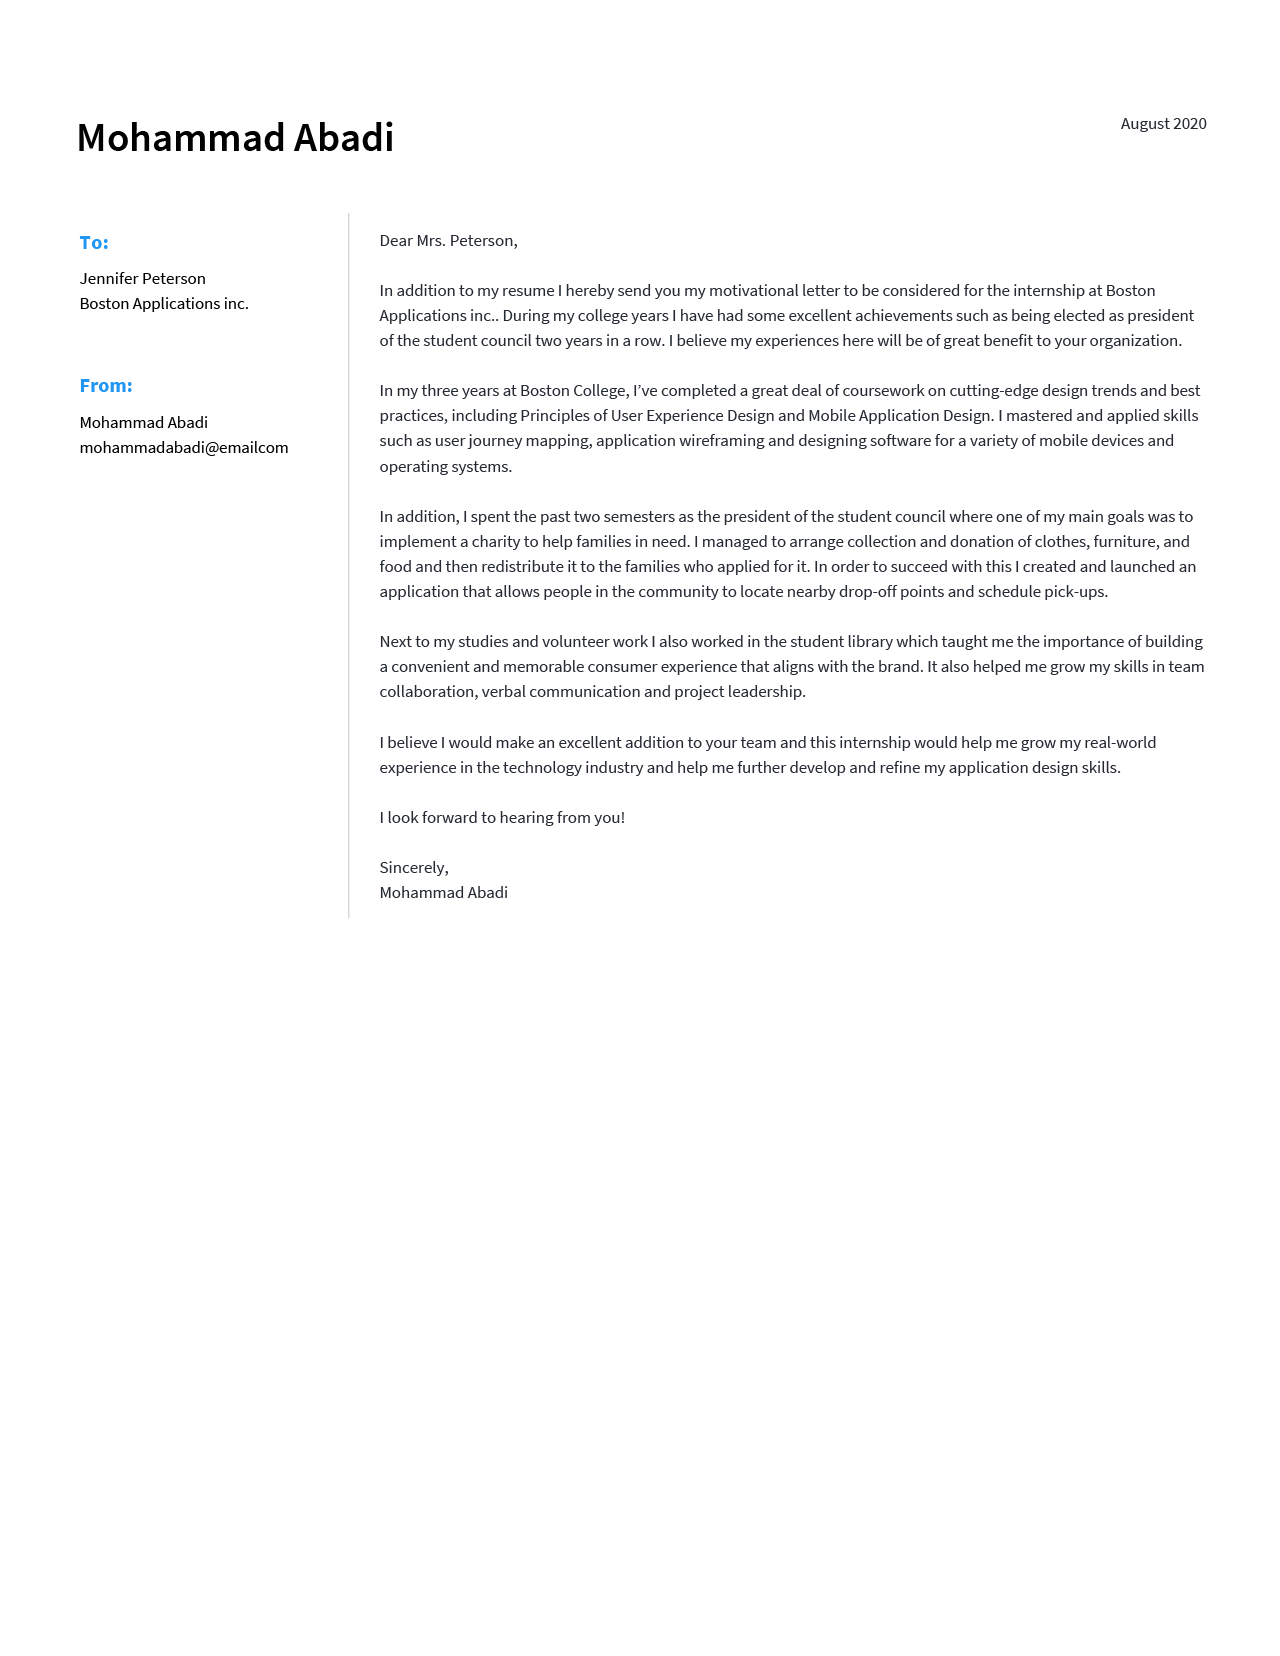 A motivation letter example for an internship application